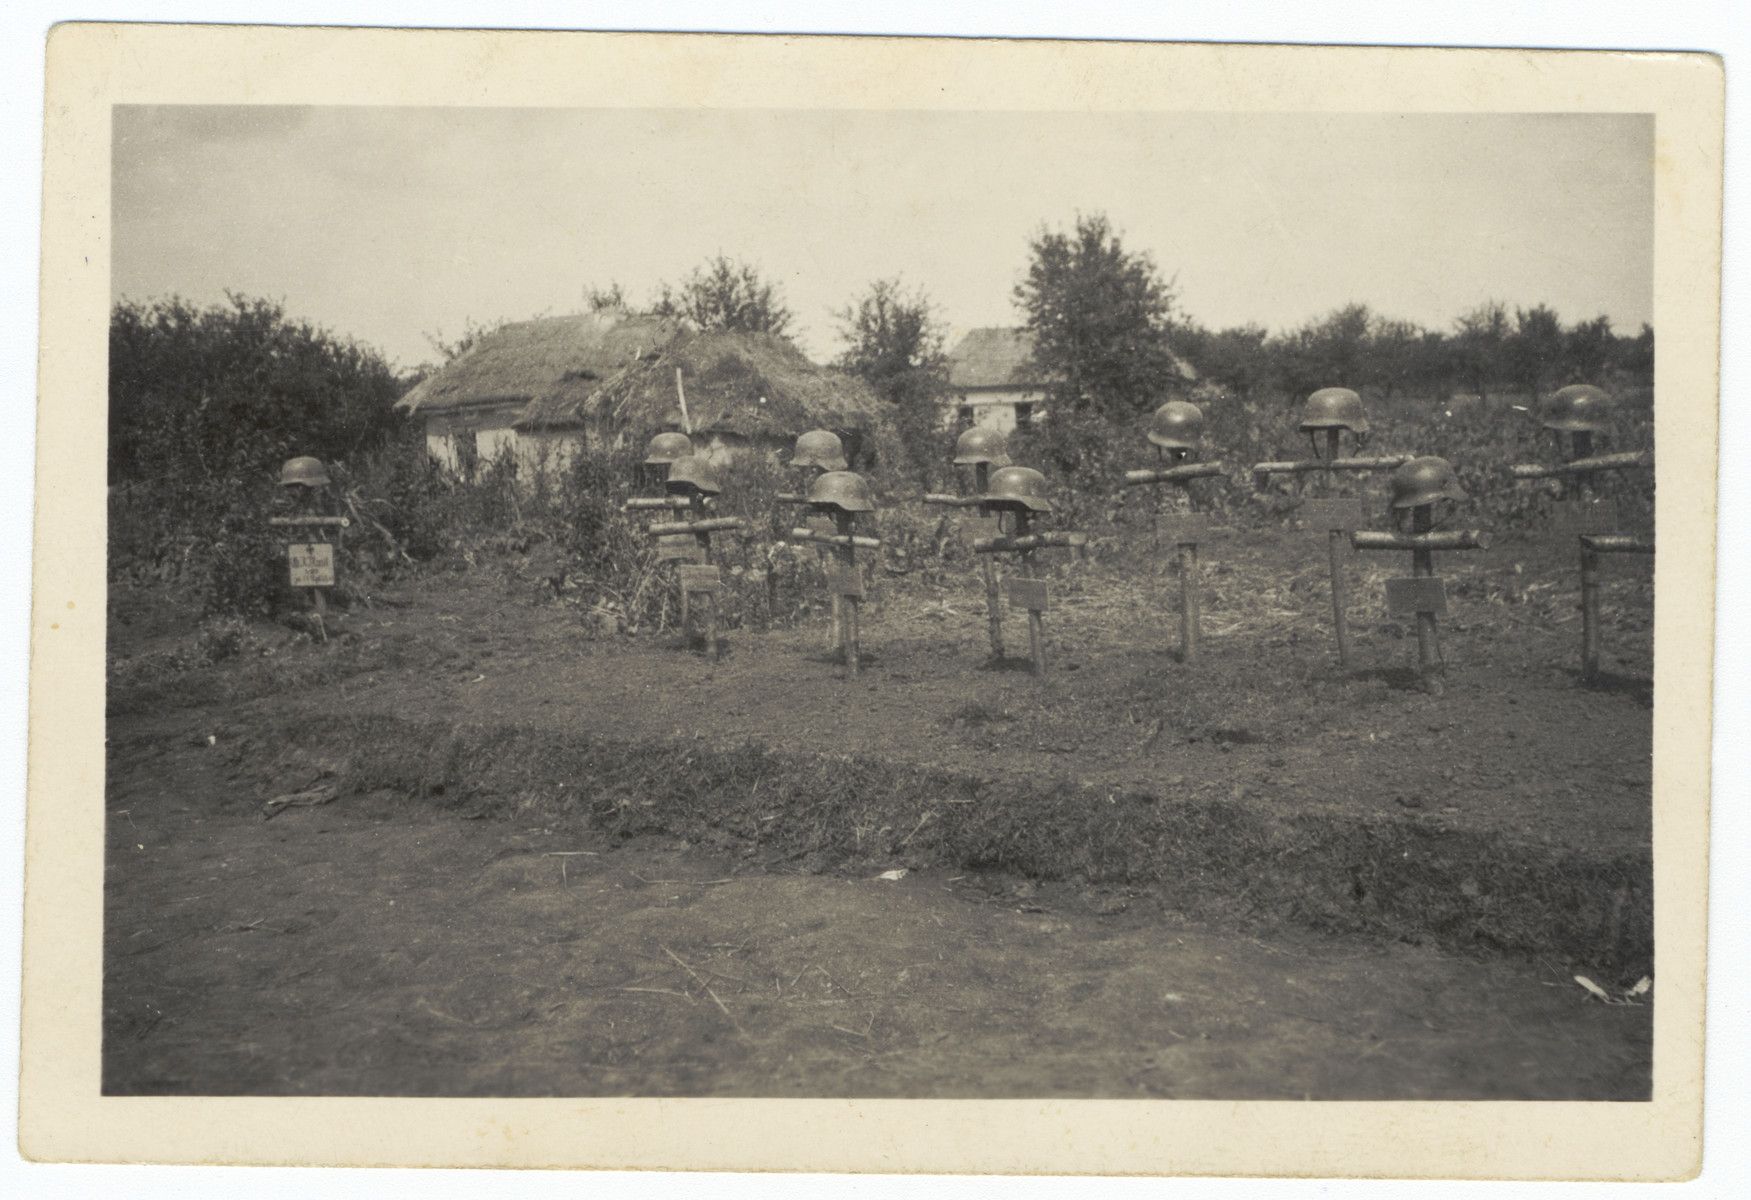 View of a make-shift German military cemetery consisting of crude crosses and helmets.